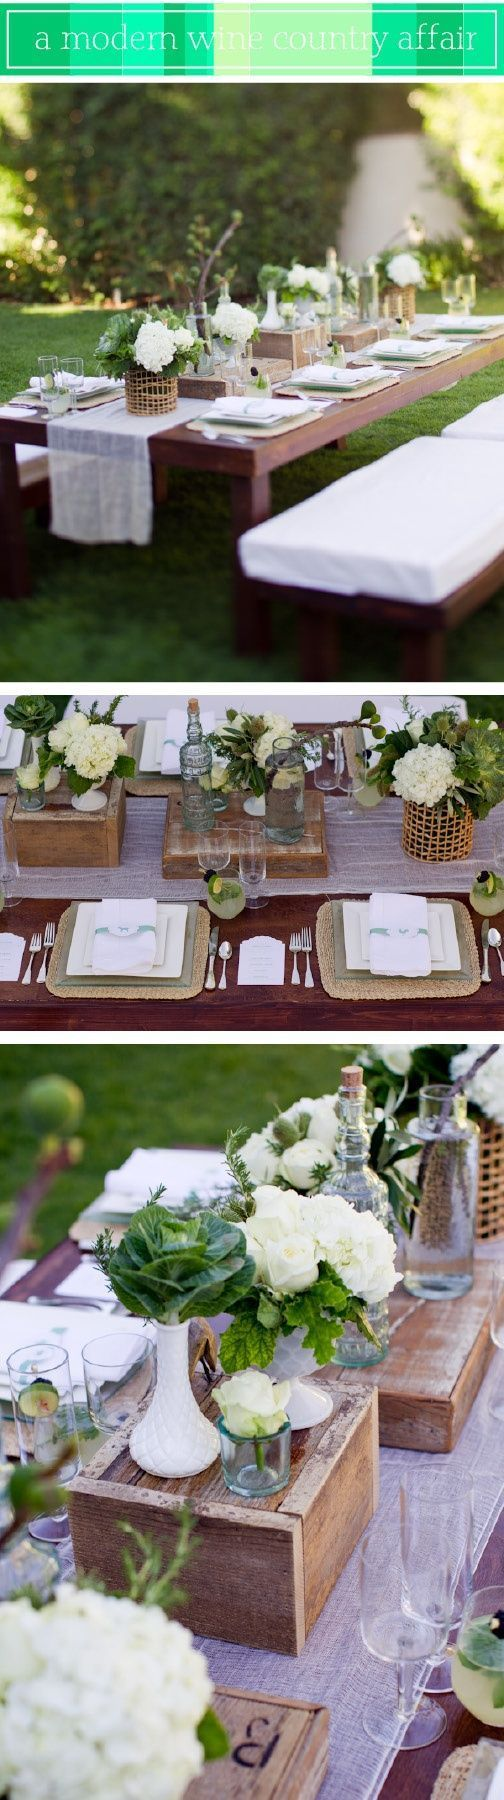 Phenomenal 22 Outdoor Dinner Party Ideas https://www.weddingtopia.co/2018/01/24/22-outdoor-dinner-party-ideas/ Since the party happens outdoors, you would like to encourage guests to visit the backyard. In Spain, this kind of party is named El Aguinaldo